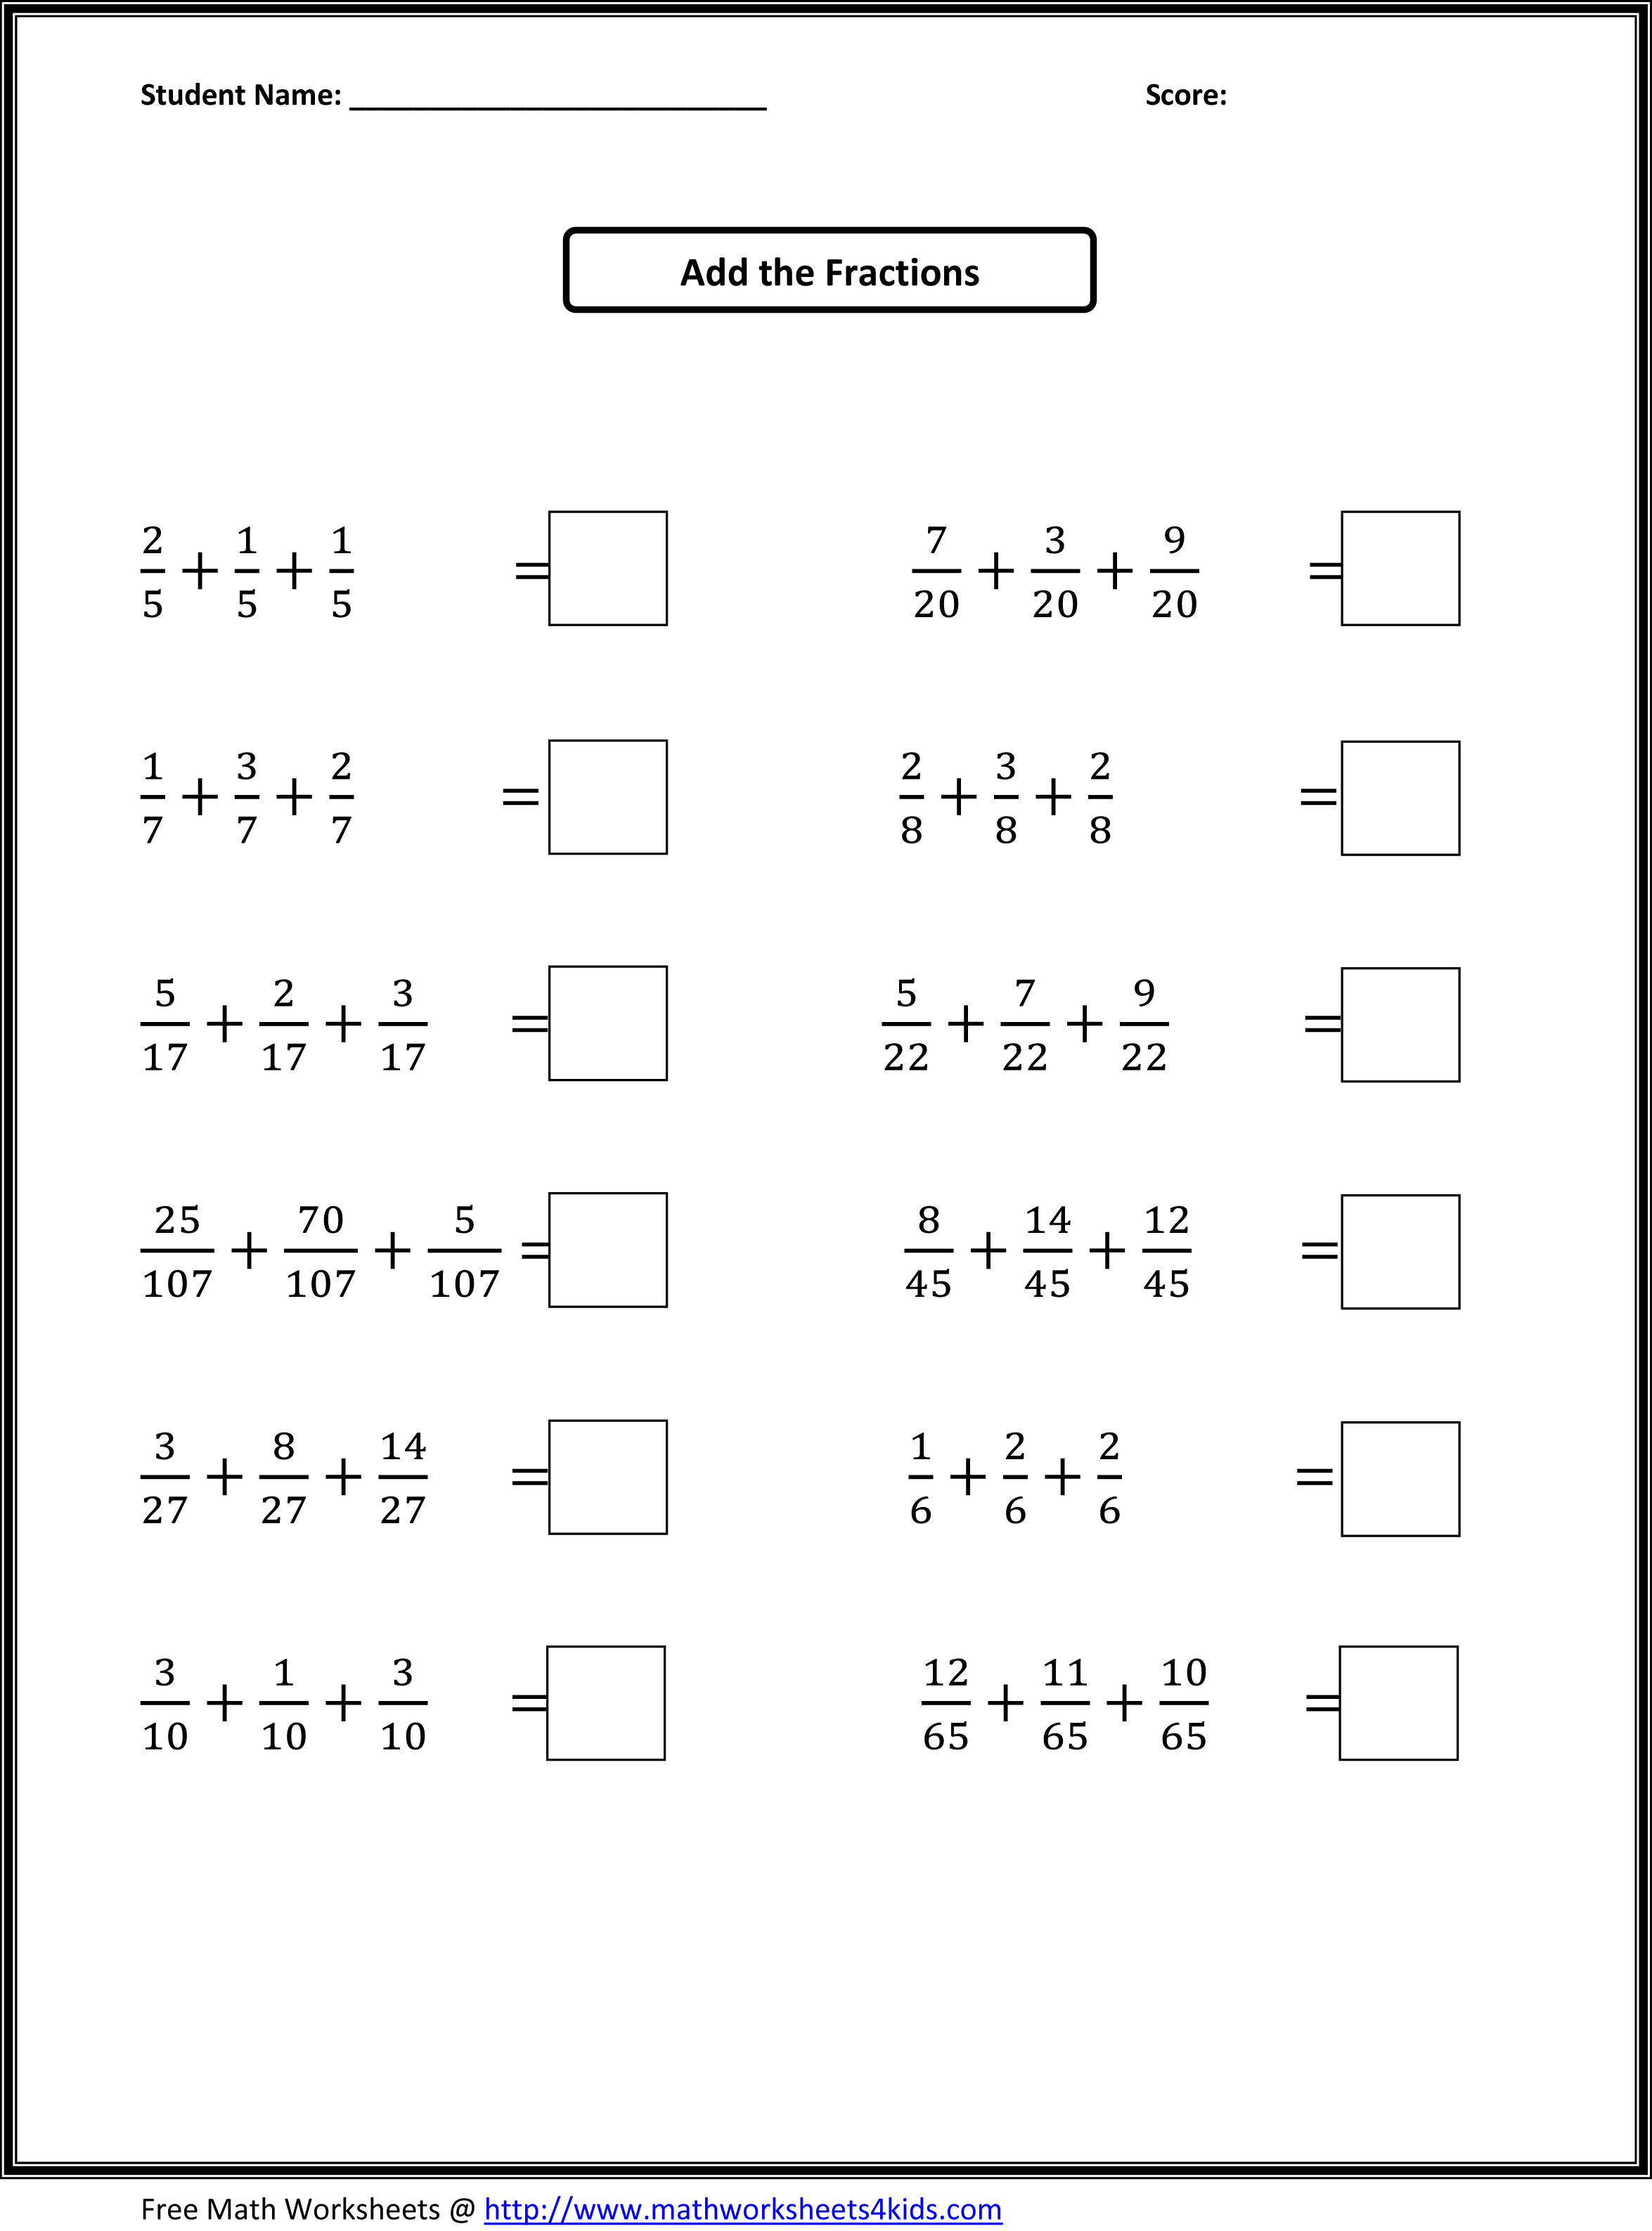 Maths Worksheets For Year 5 And 6